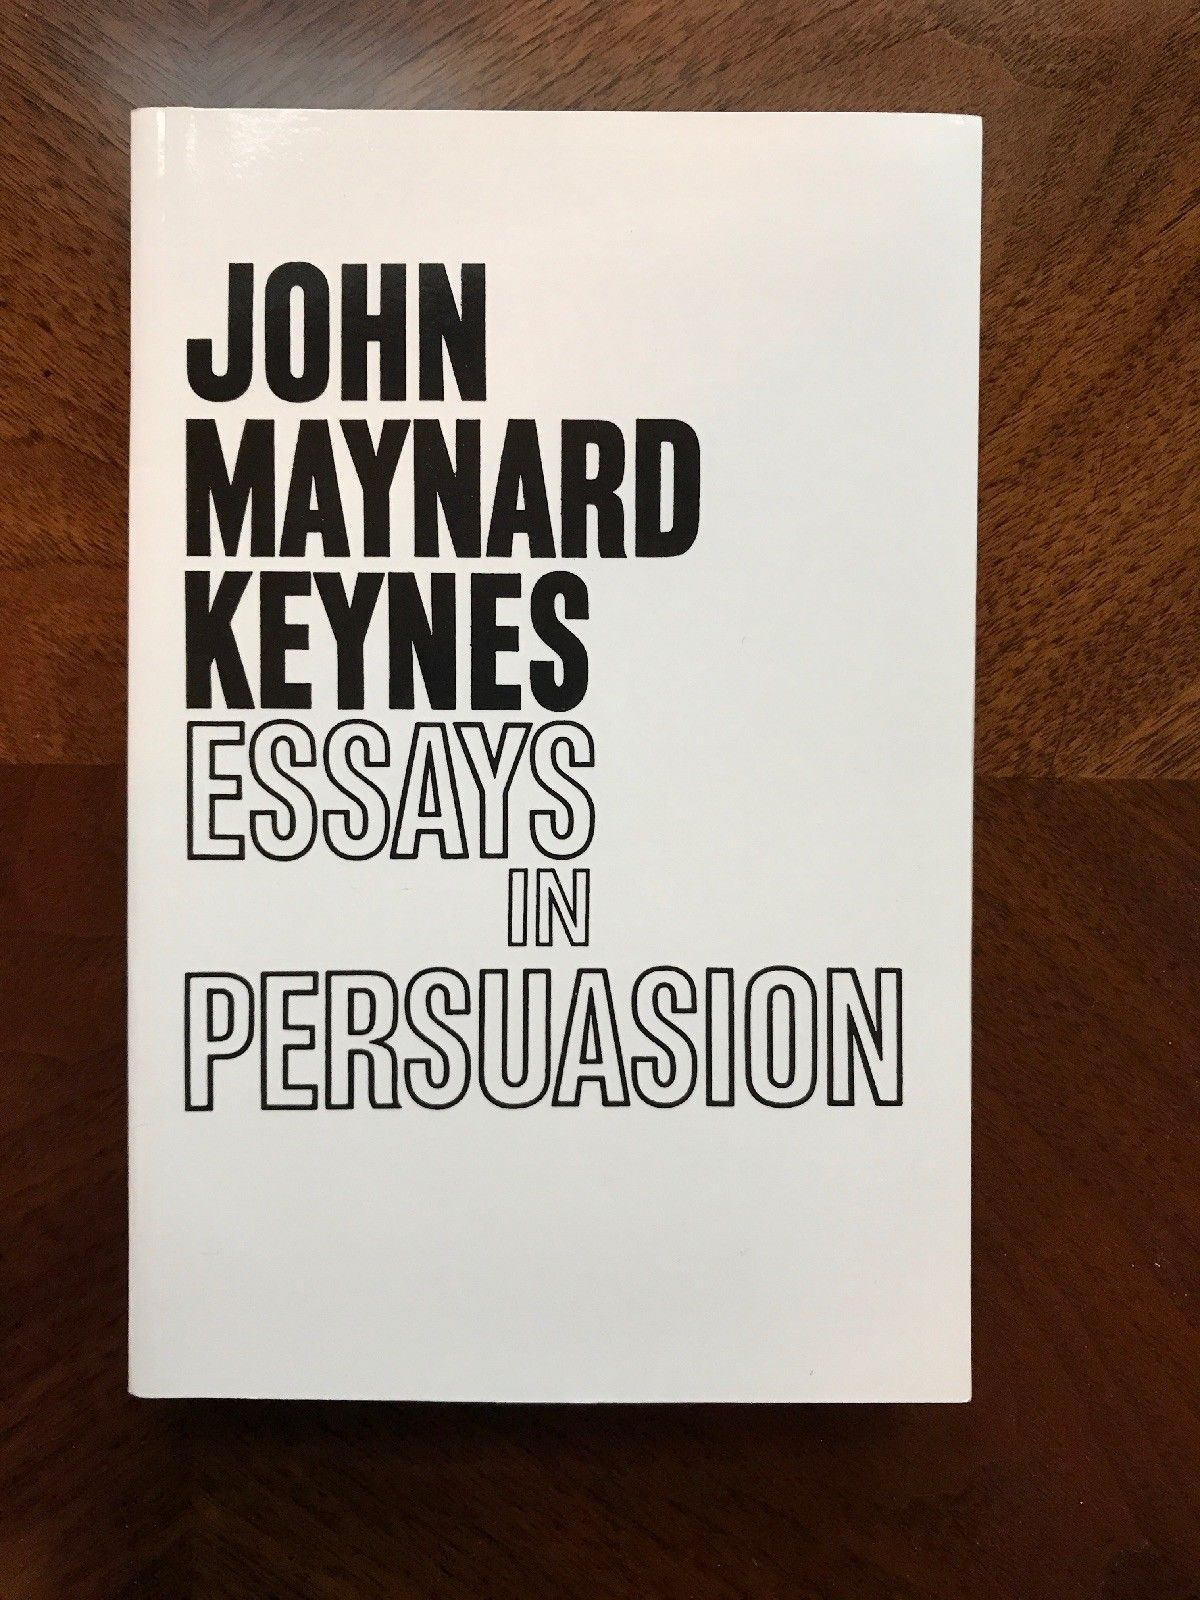 021 S L1600 Essay Example Essays In Remarkable Persuasion Keynes 1931 Wikipedia Summary Full